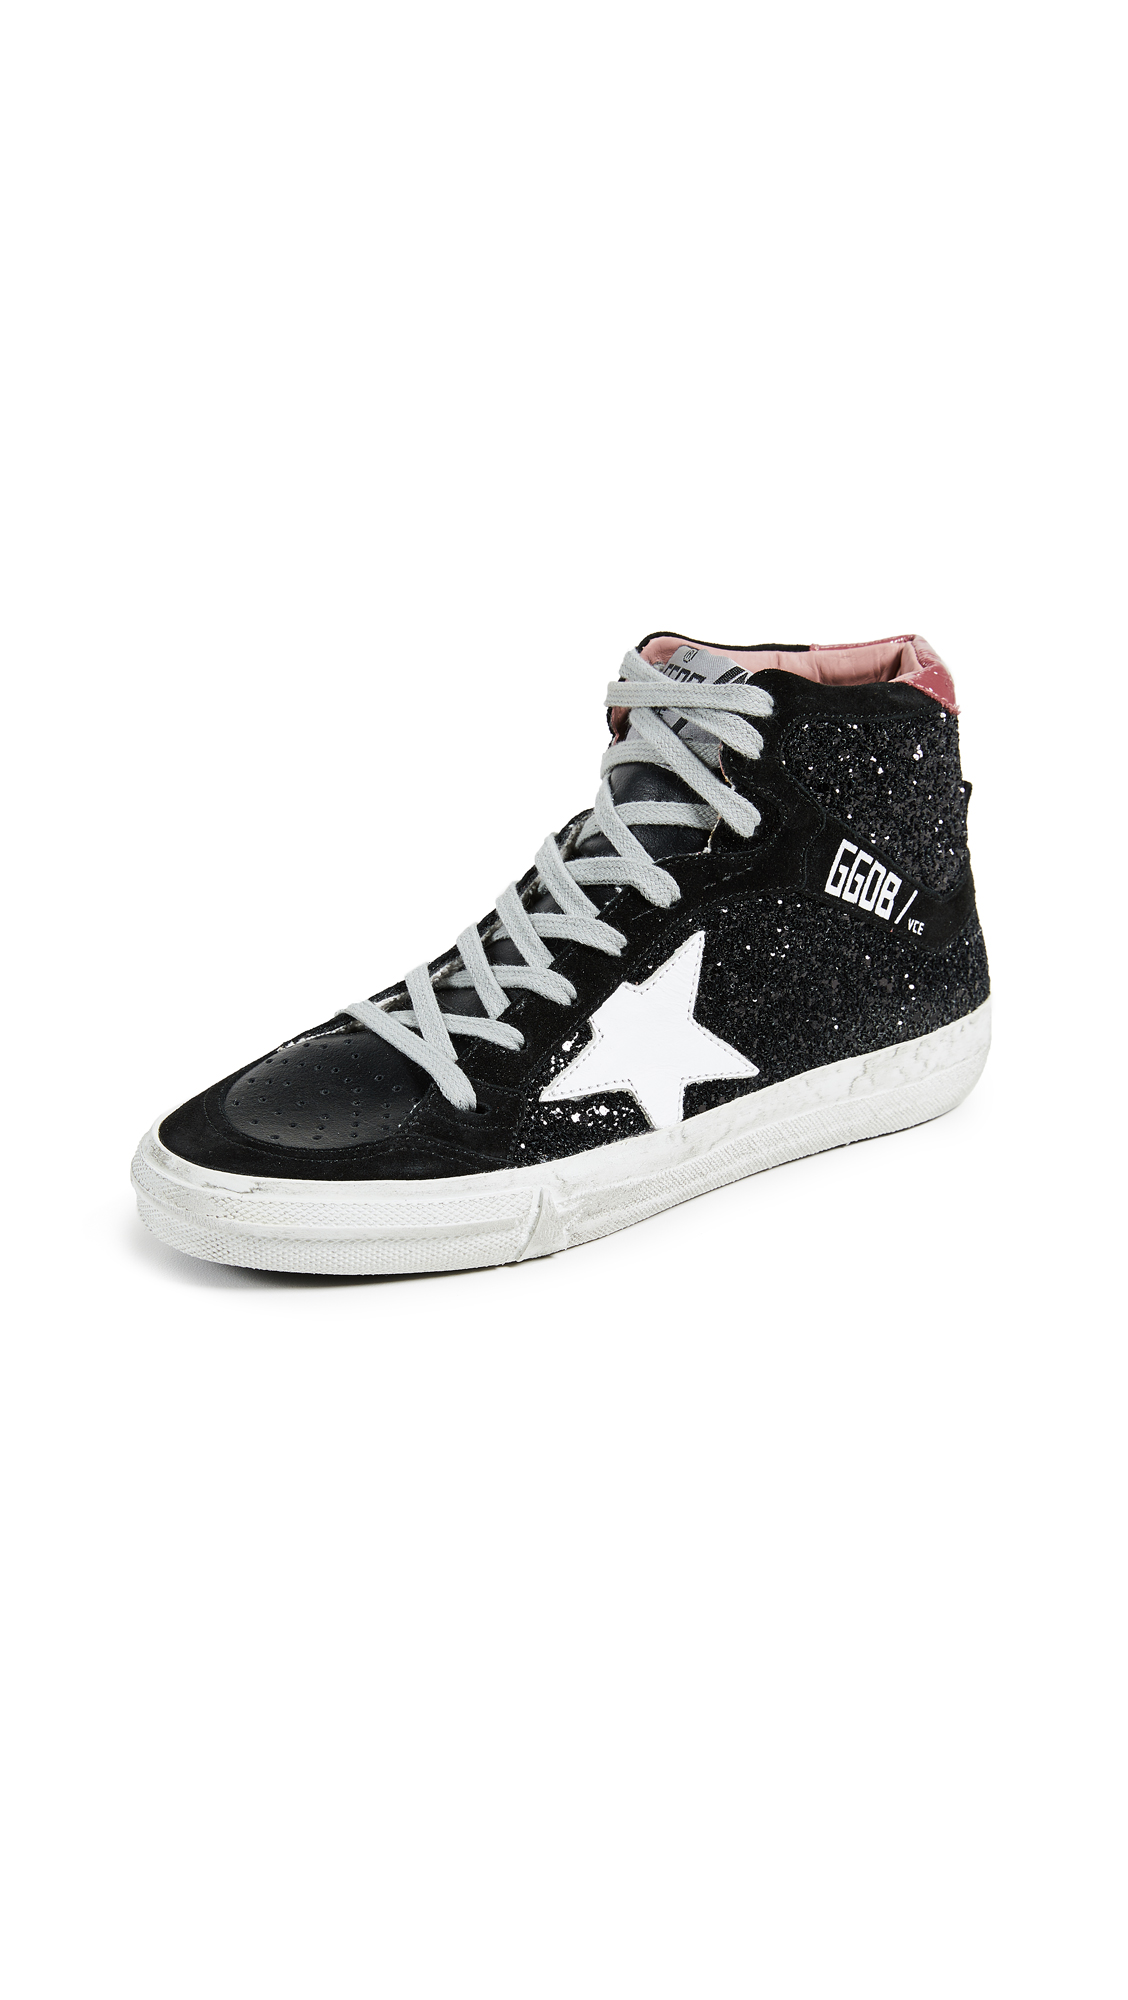 Golden Goose 2.12 Sneakers - Black/White